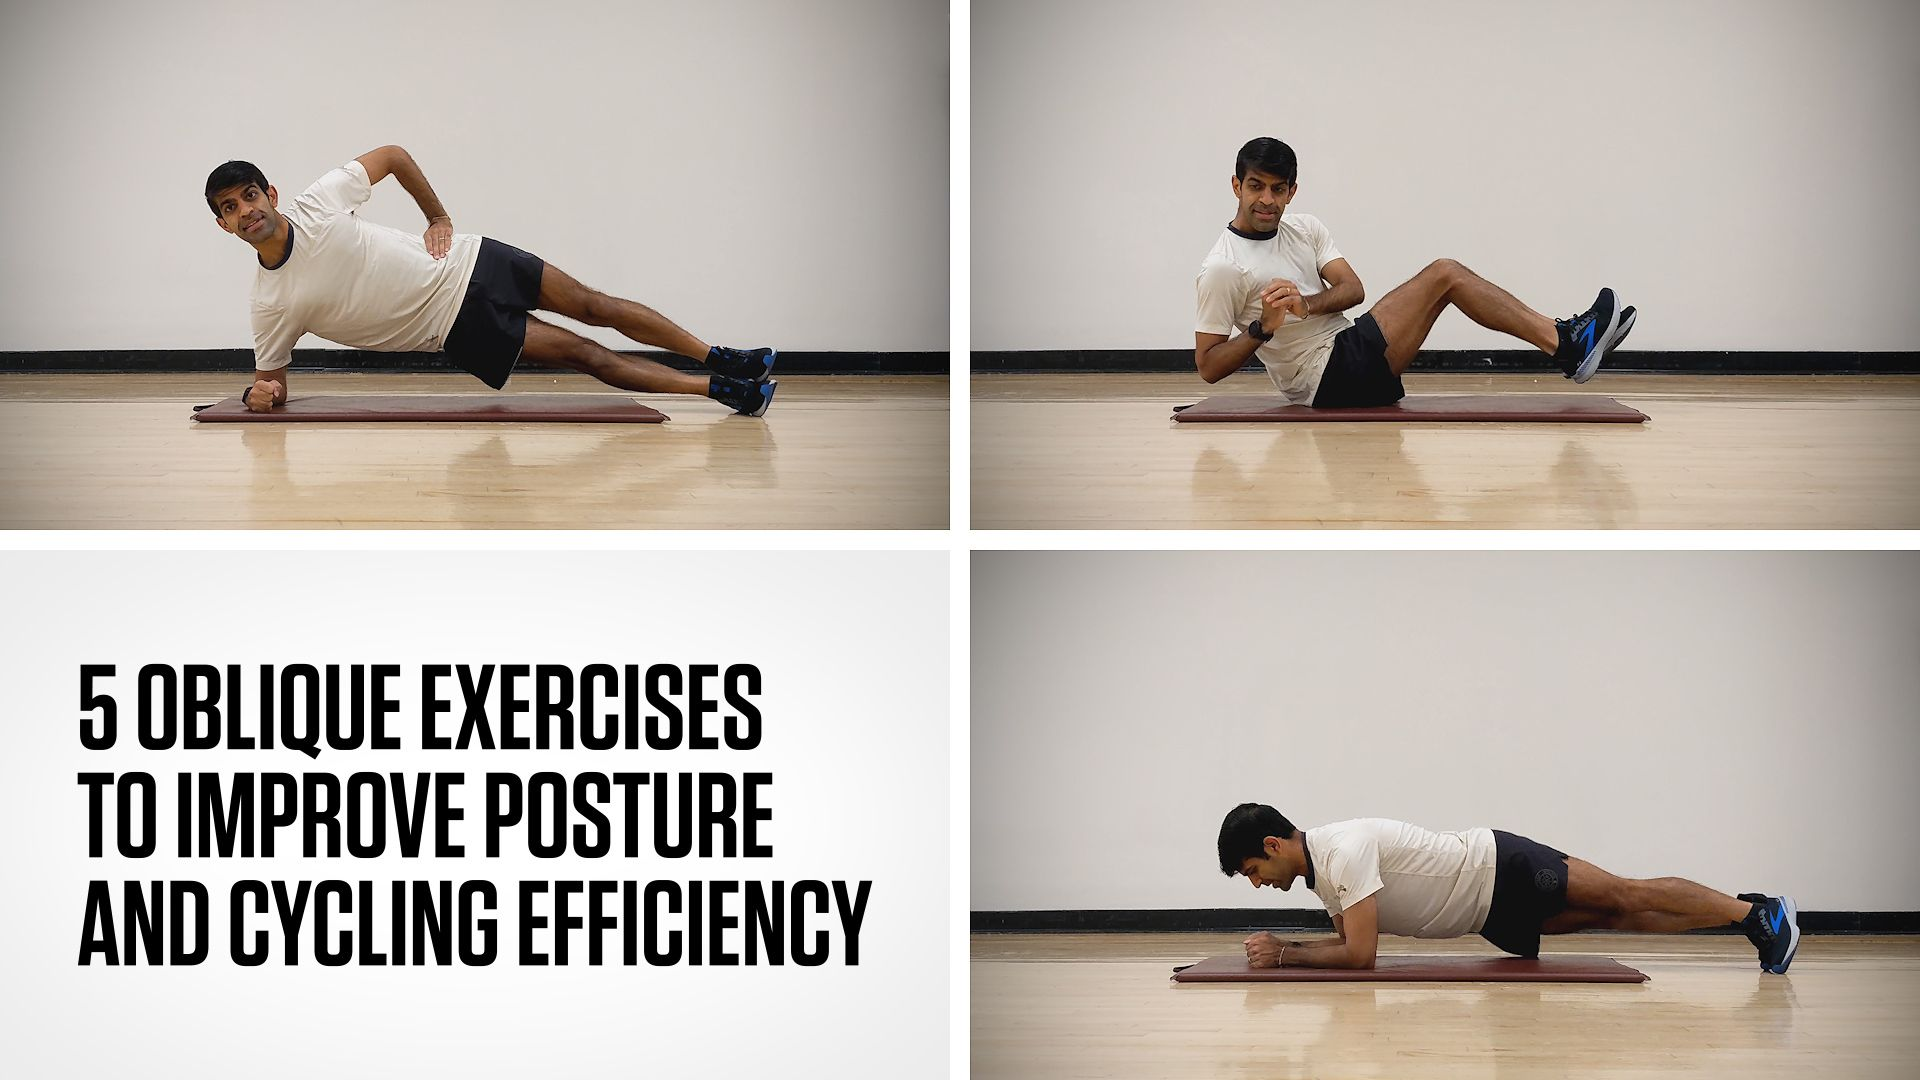 5 Oblique Exercises to Improve Your Posture and Running Efficiency